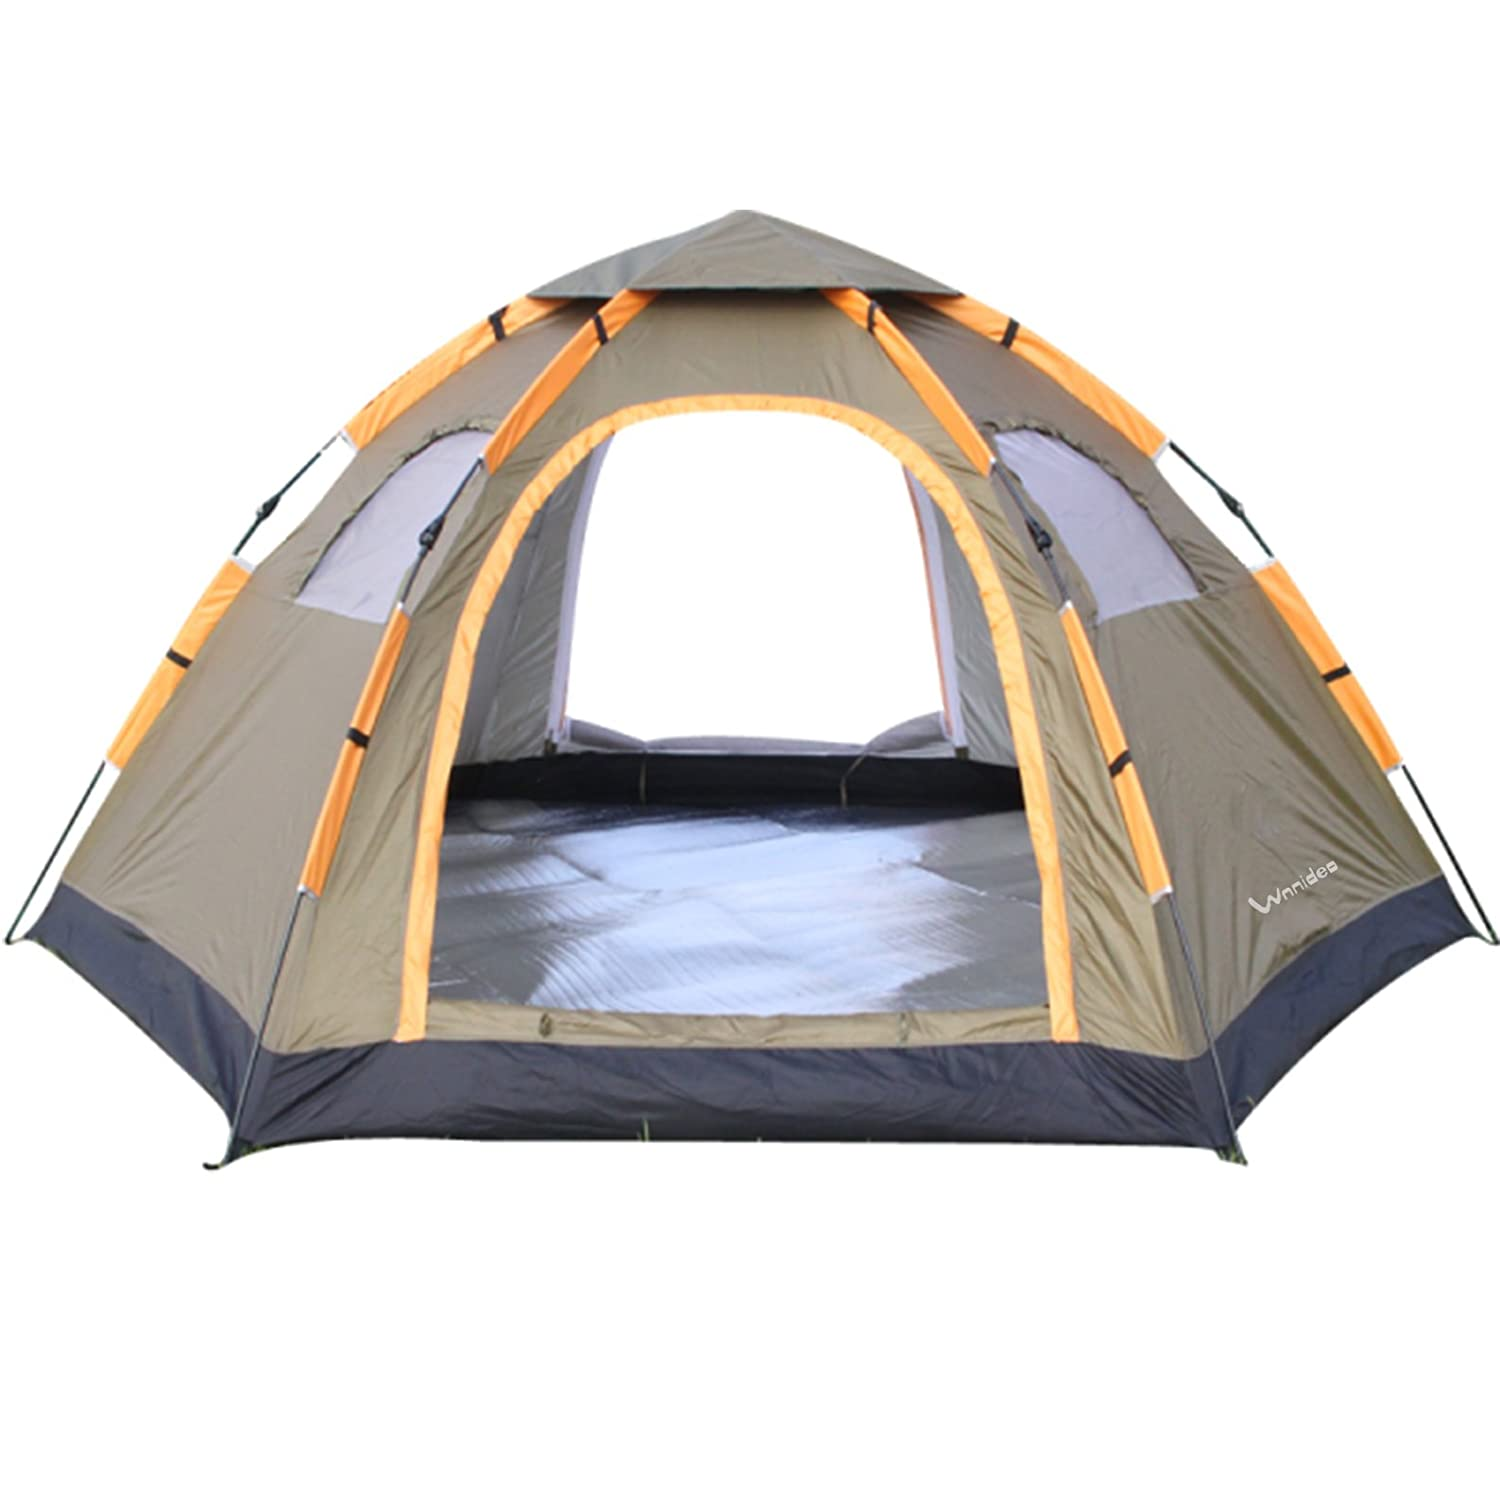 Wnnideo Instant Family Tent, Best Instant Tents Review 2019